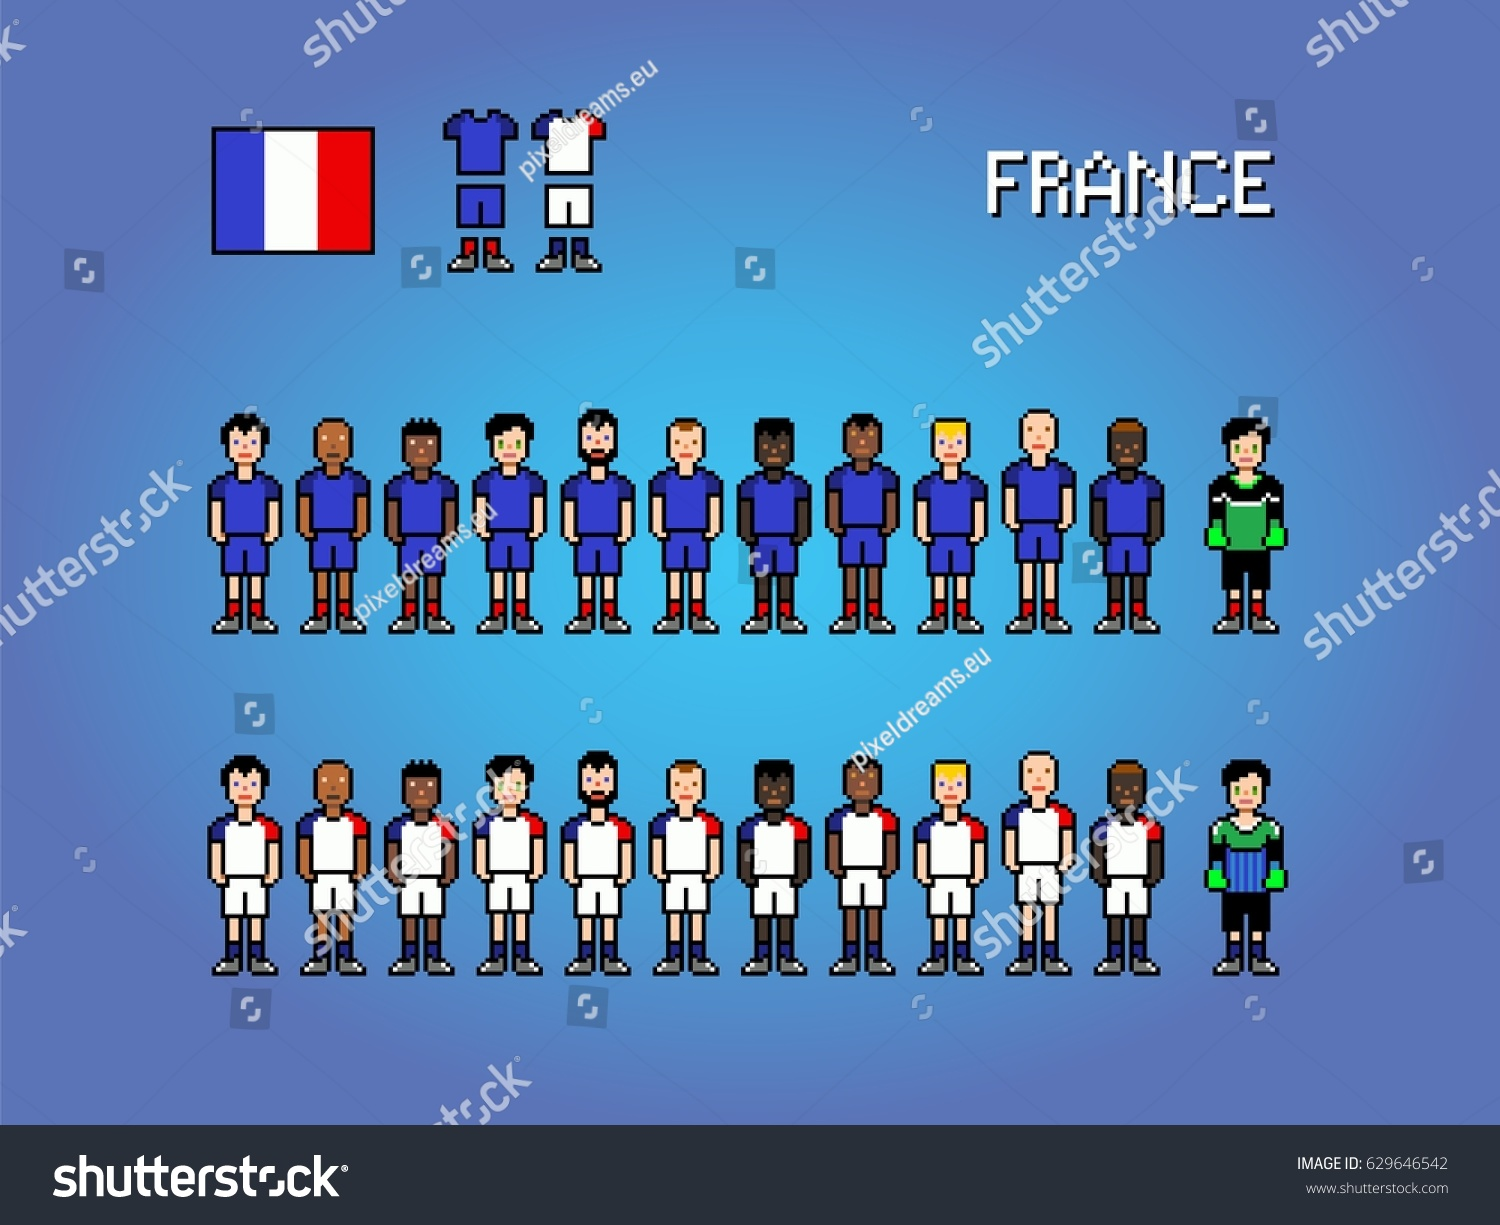 Image Vectorielle De Stock De France National Football Team